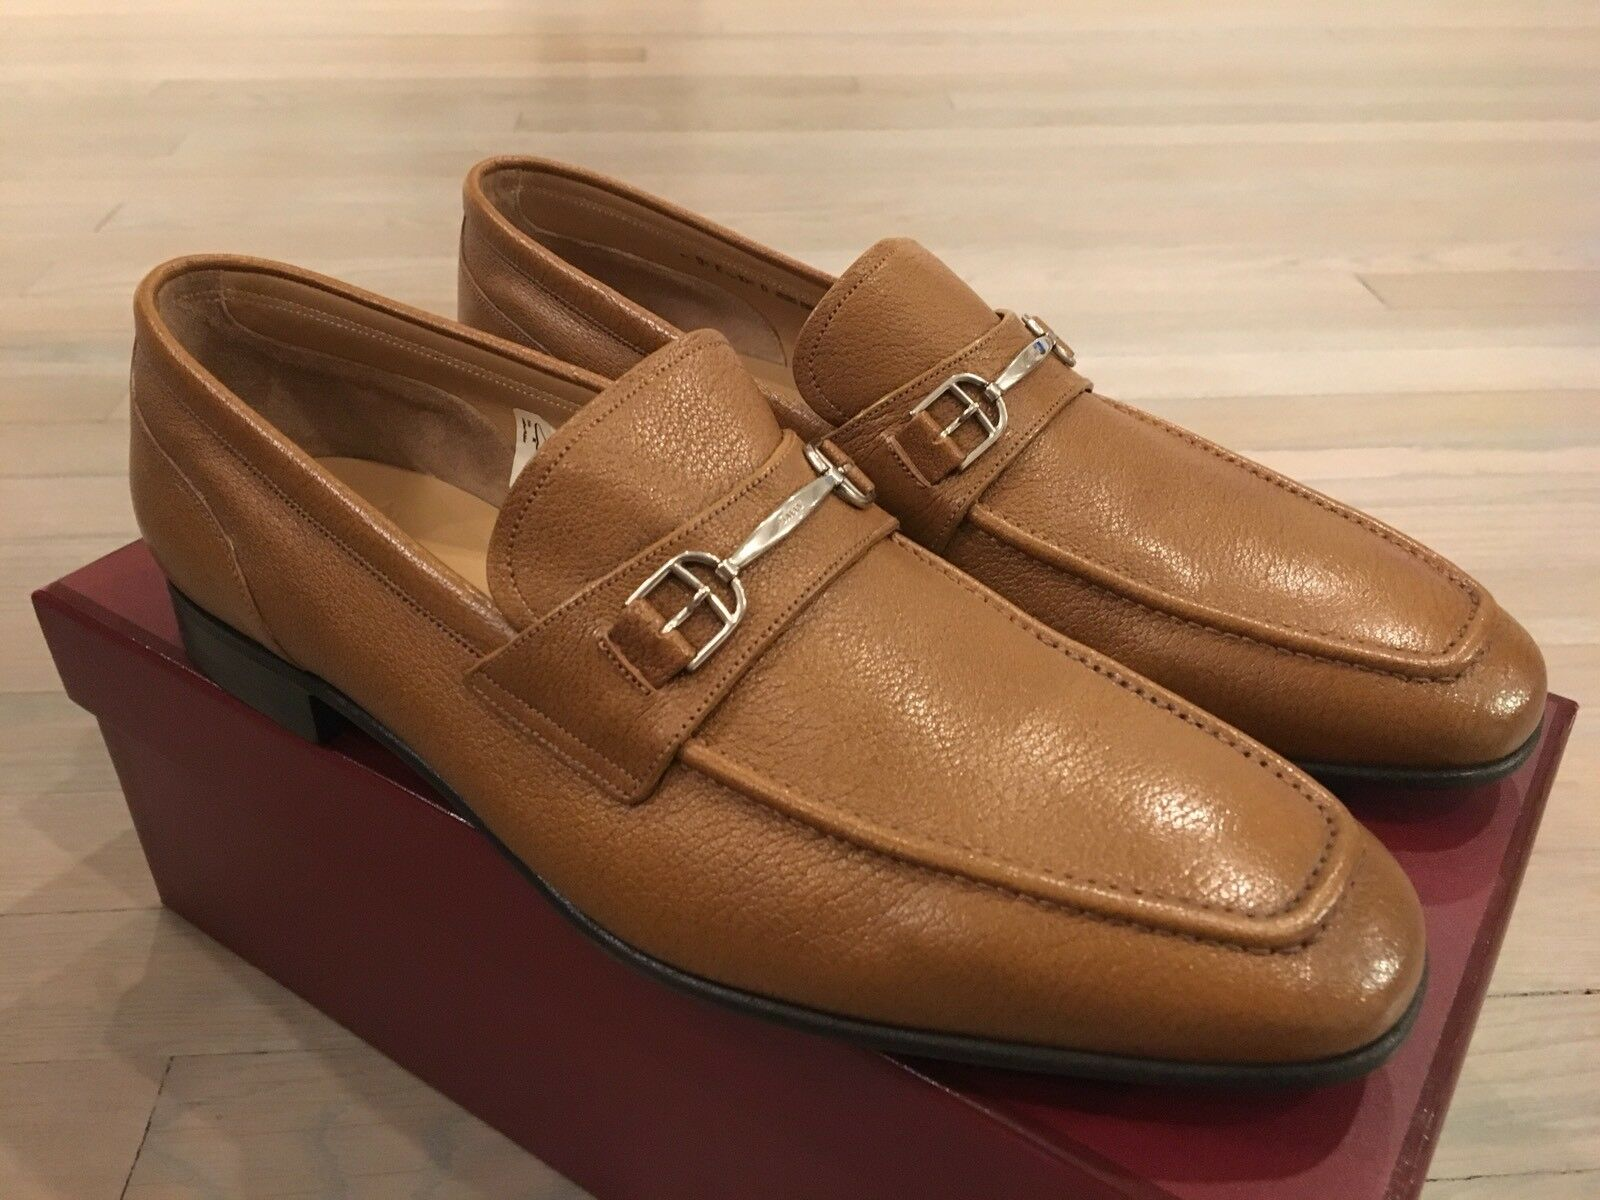 700  Bally Khaki Brian Pelle Loafers Taglia US 9.5 Made in Switzerland